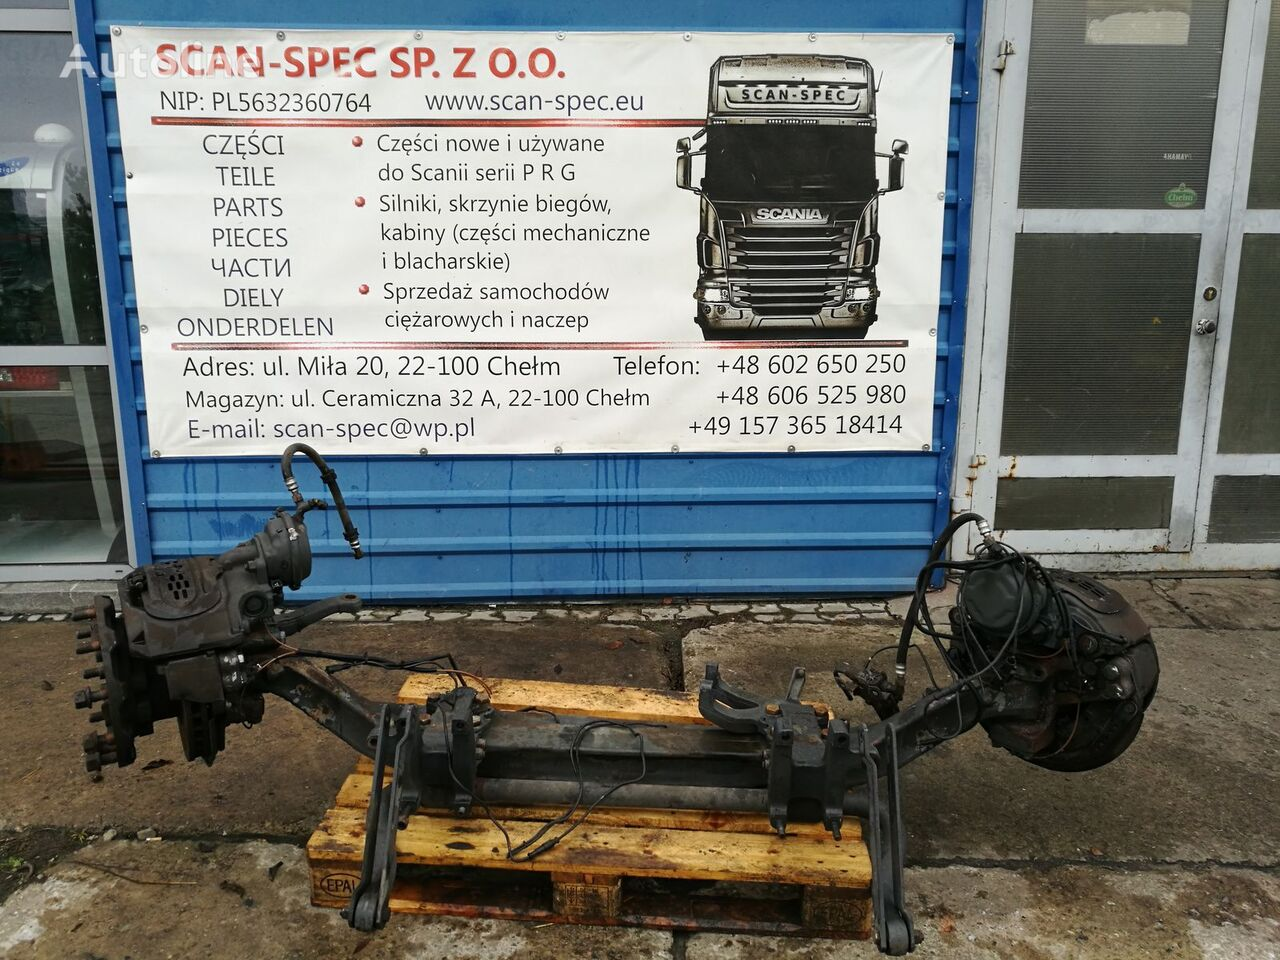 SCANIA (Lowdeck / Mega) axle for SCANIA PRG tractor unit